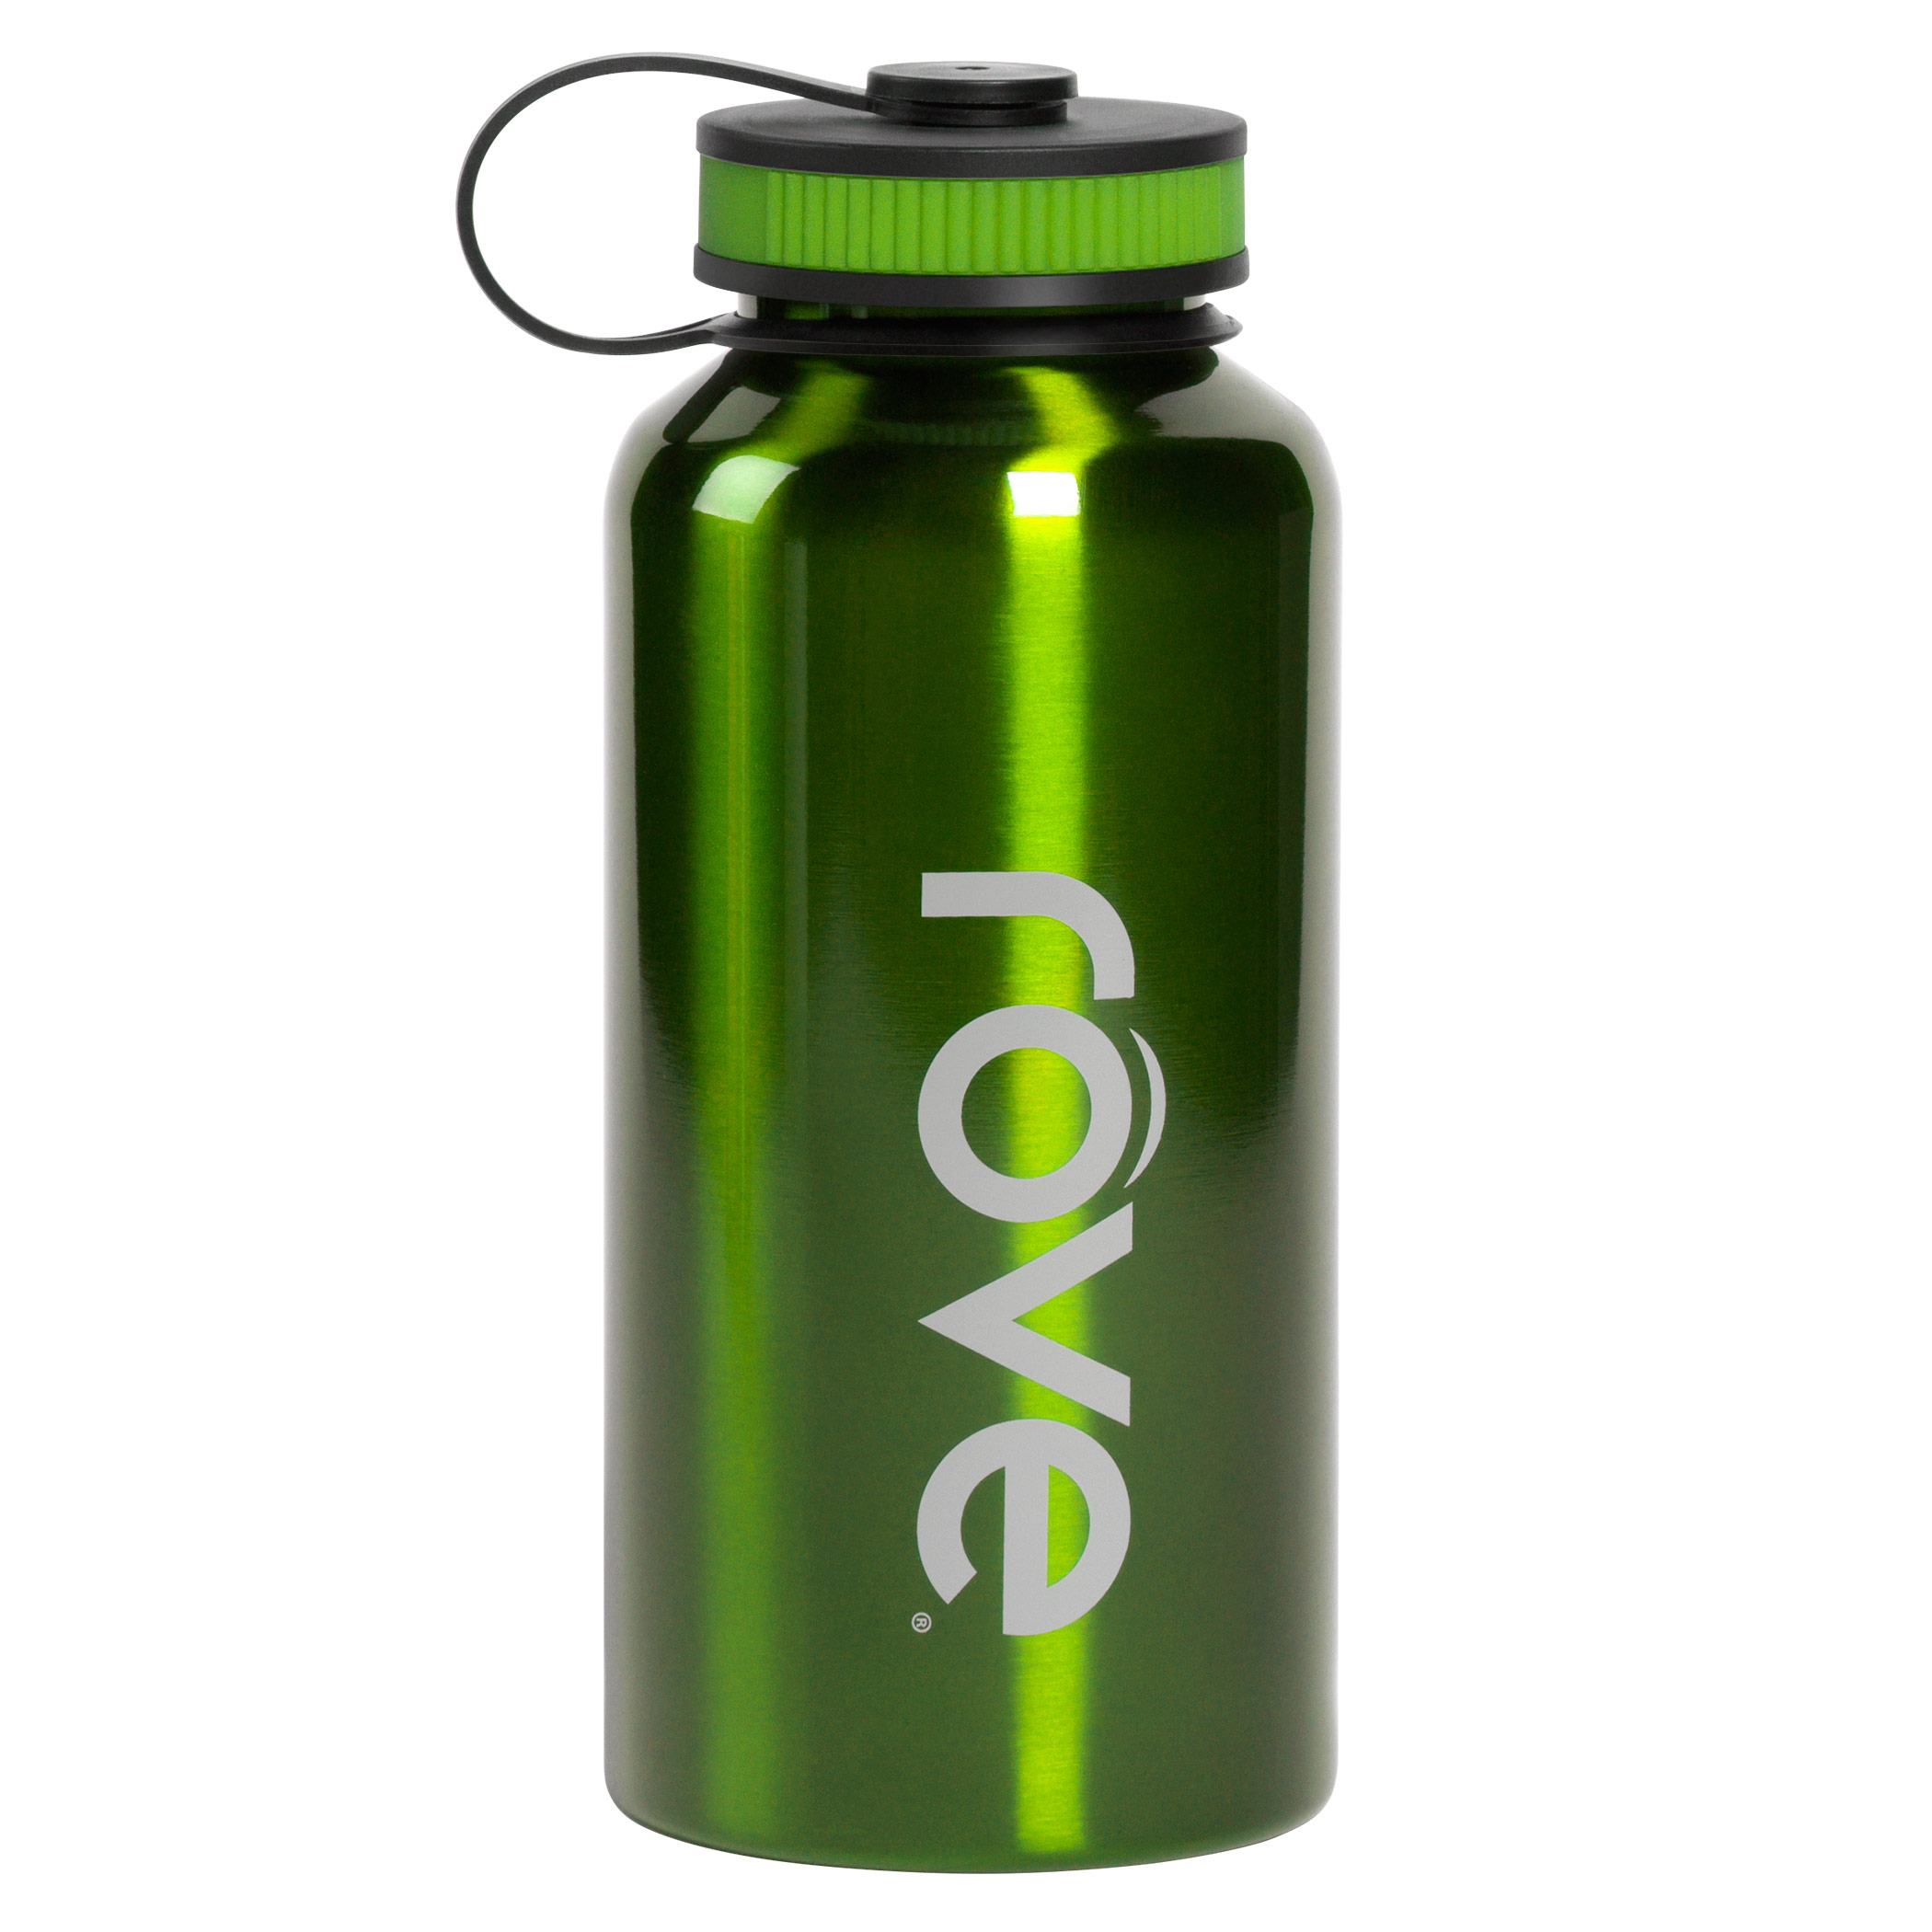 Rove 40oz Stainless Steel Single Wall Water Bottle Commando Tabletops Unlimited Inc